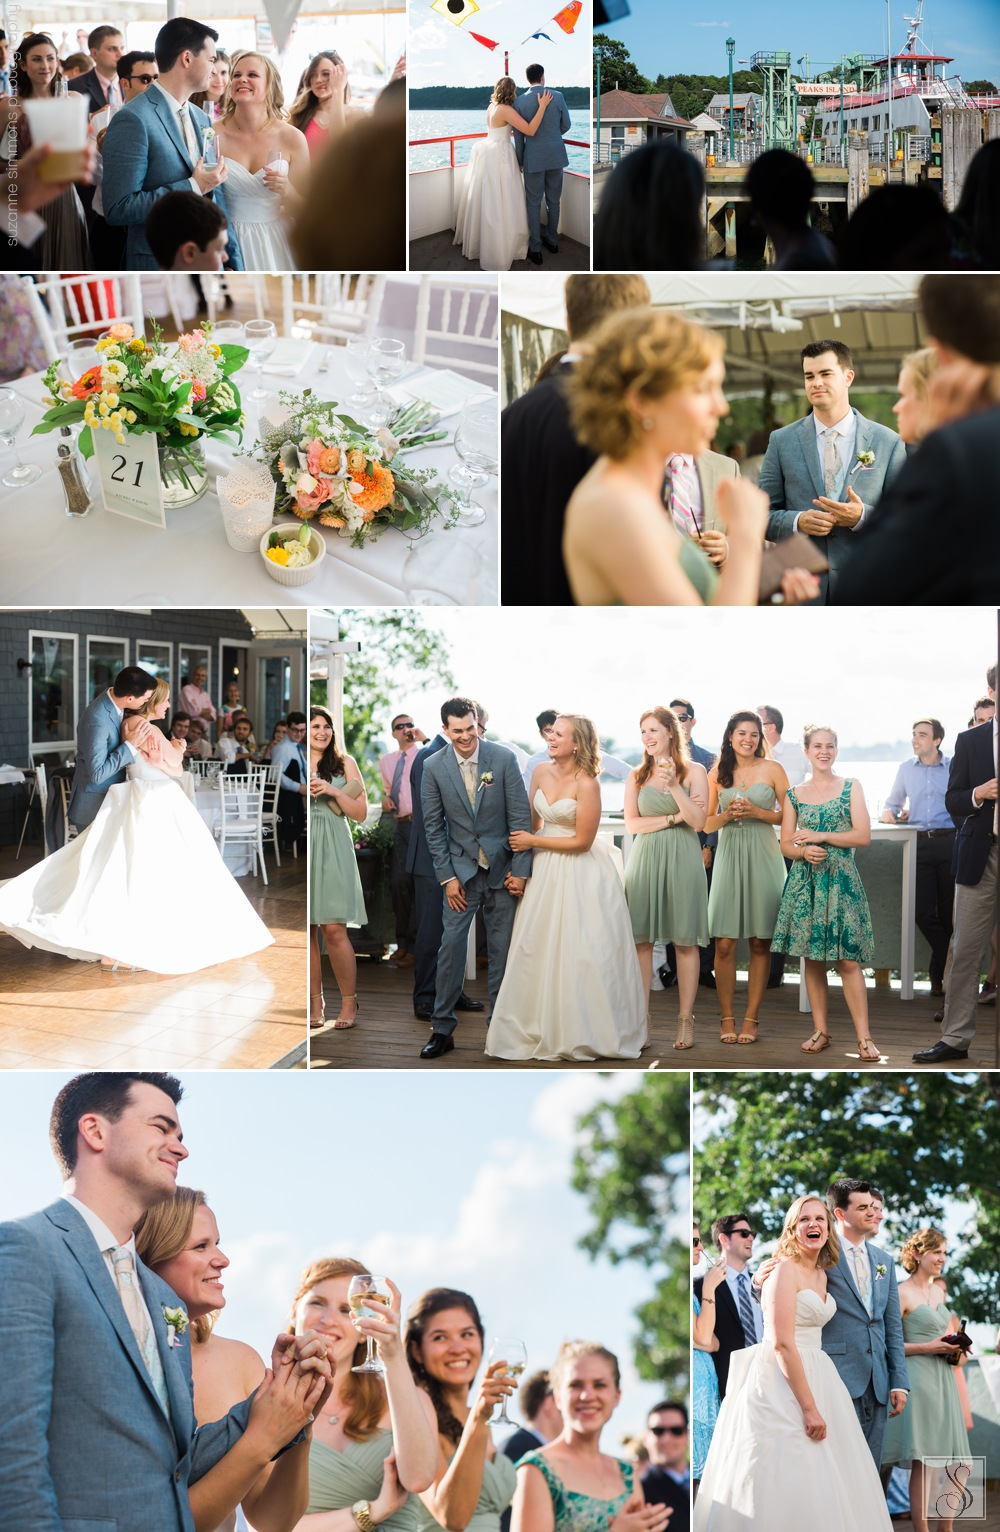 Wedding reception at Jones Landing on Peaks Island